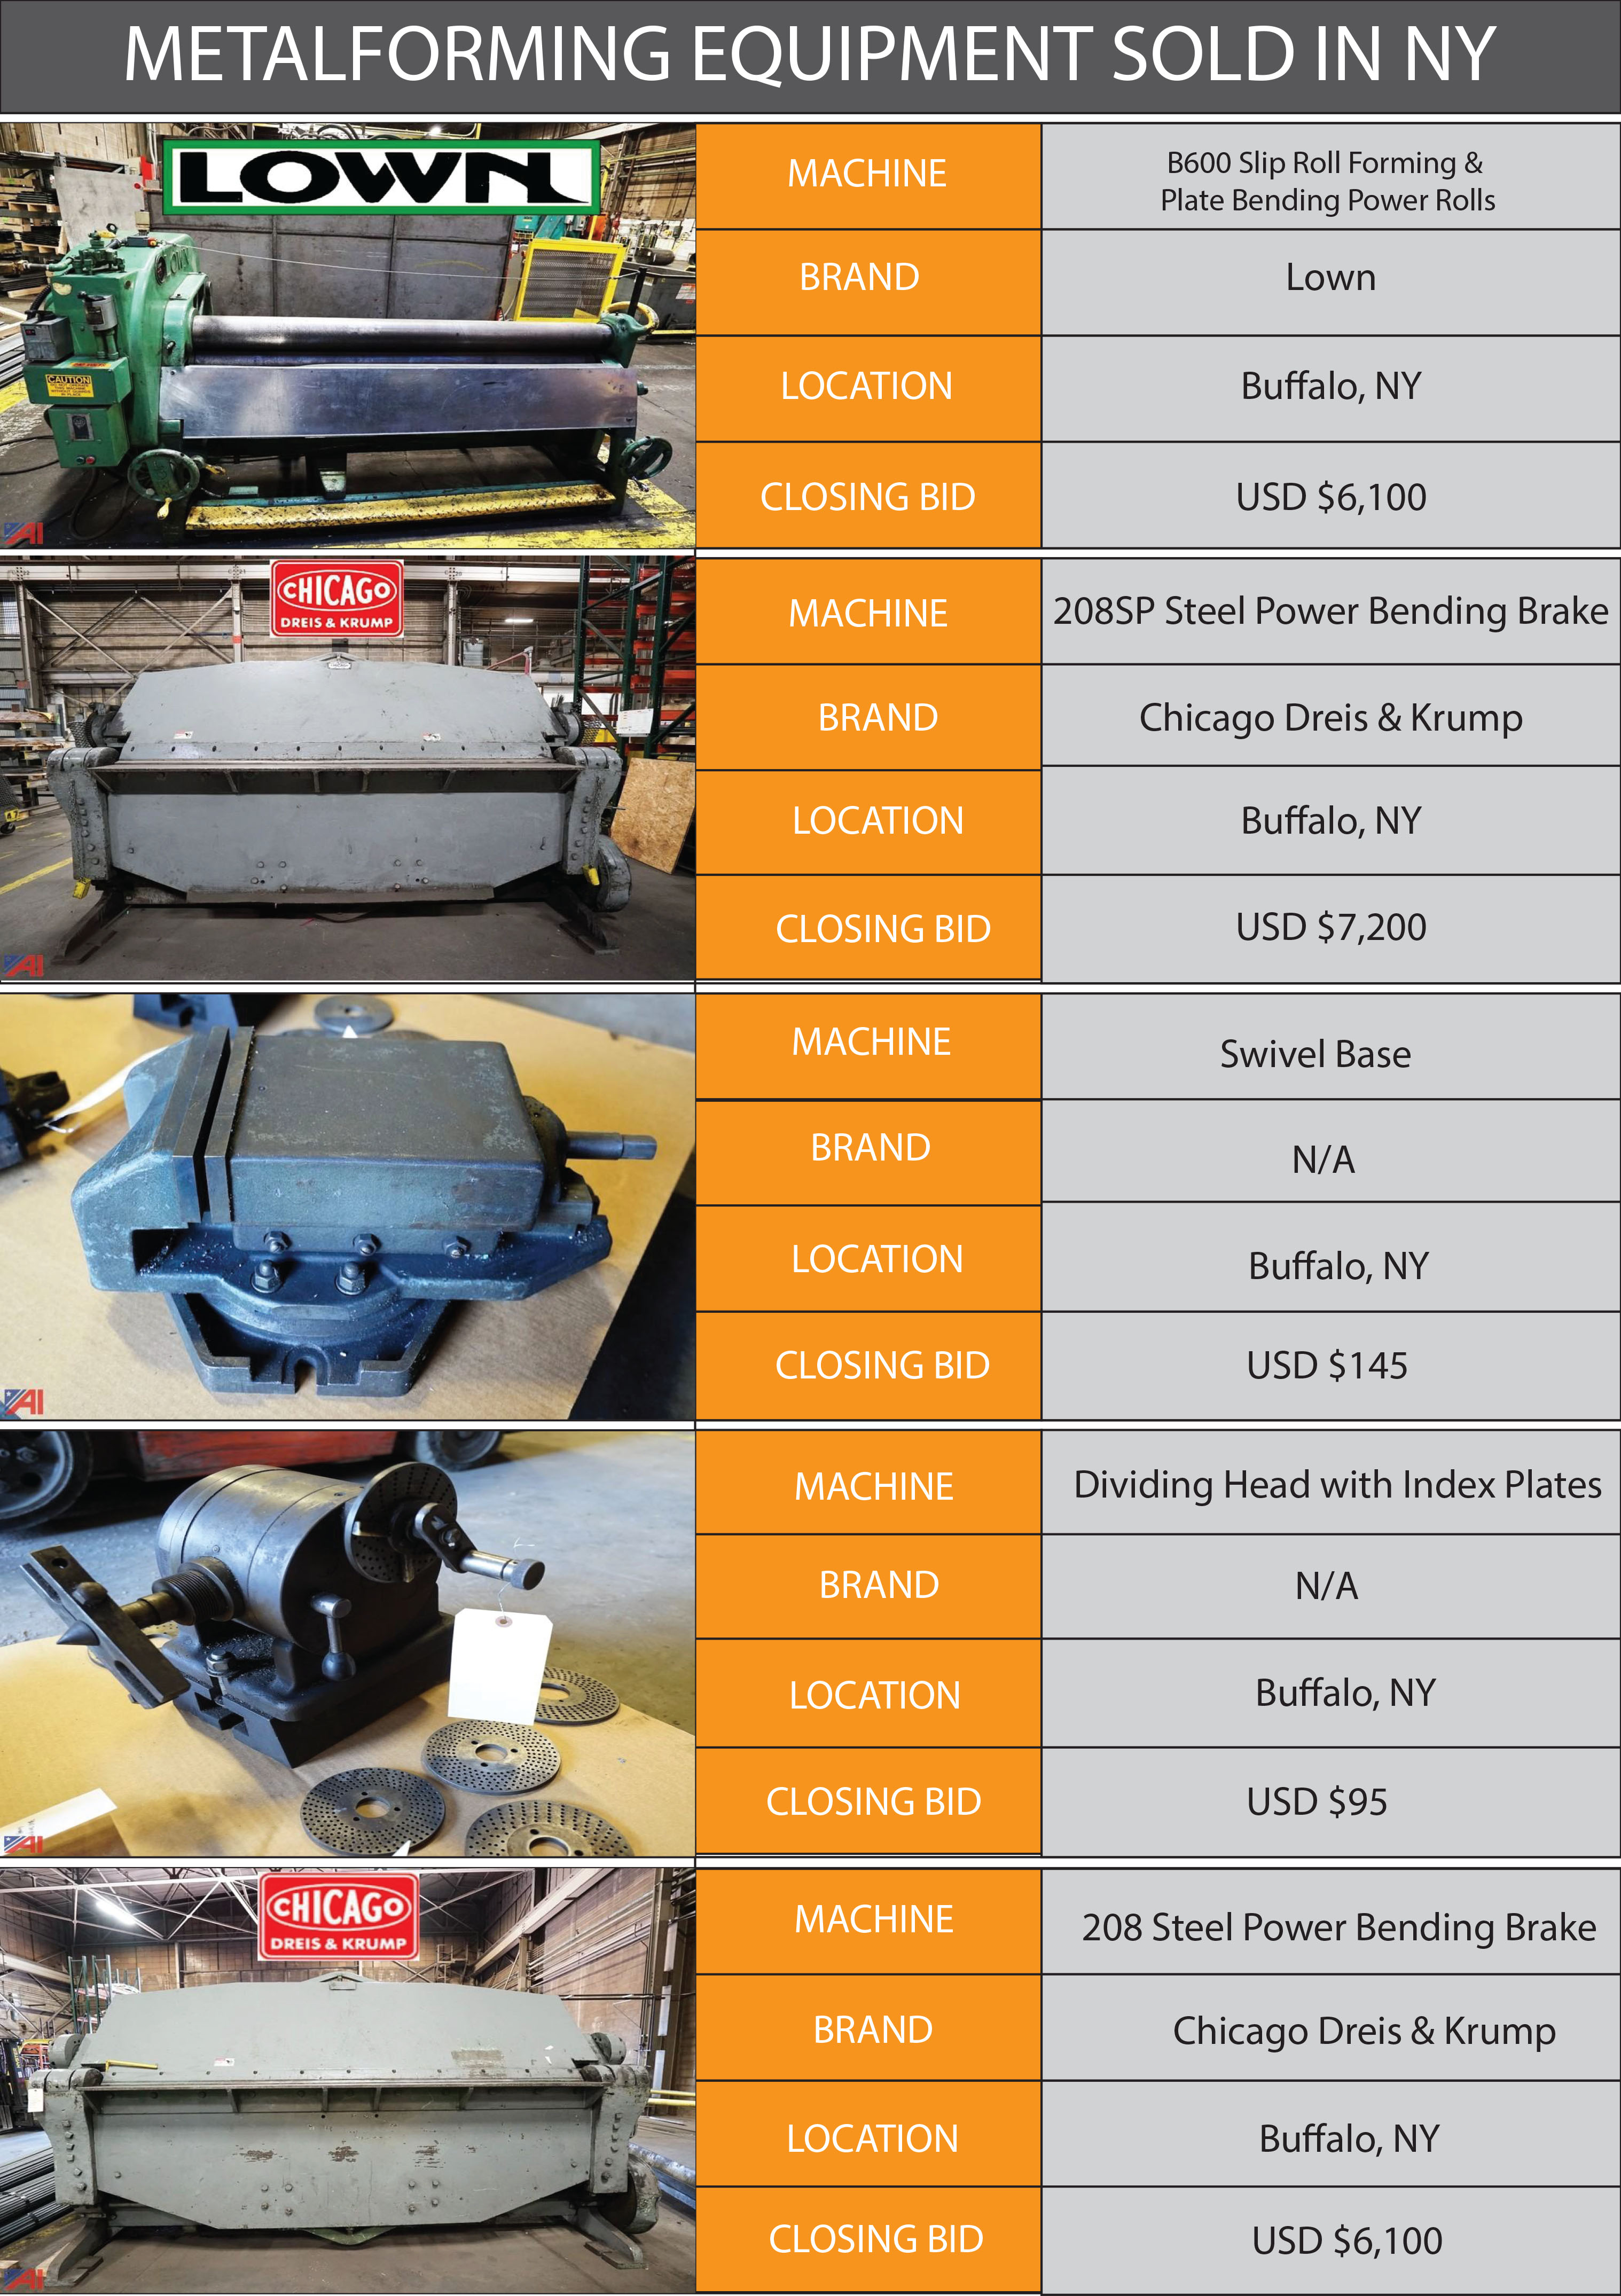 Metalforming Equipment Sold in NY Infographic